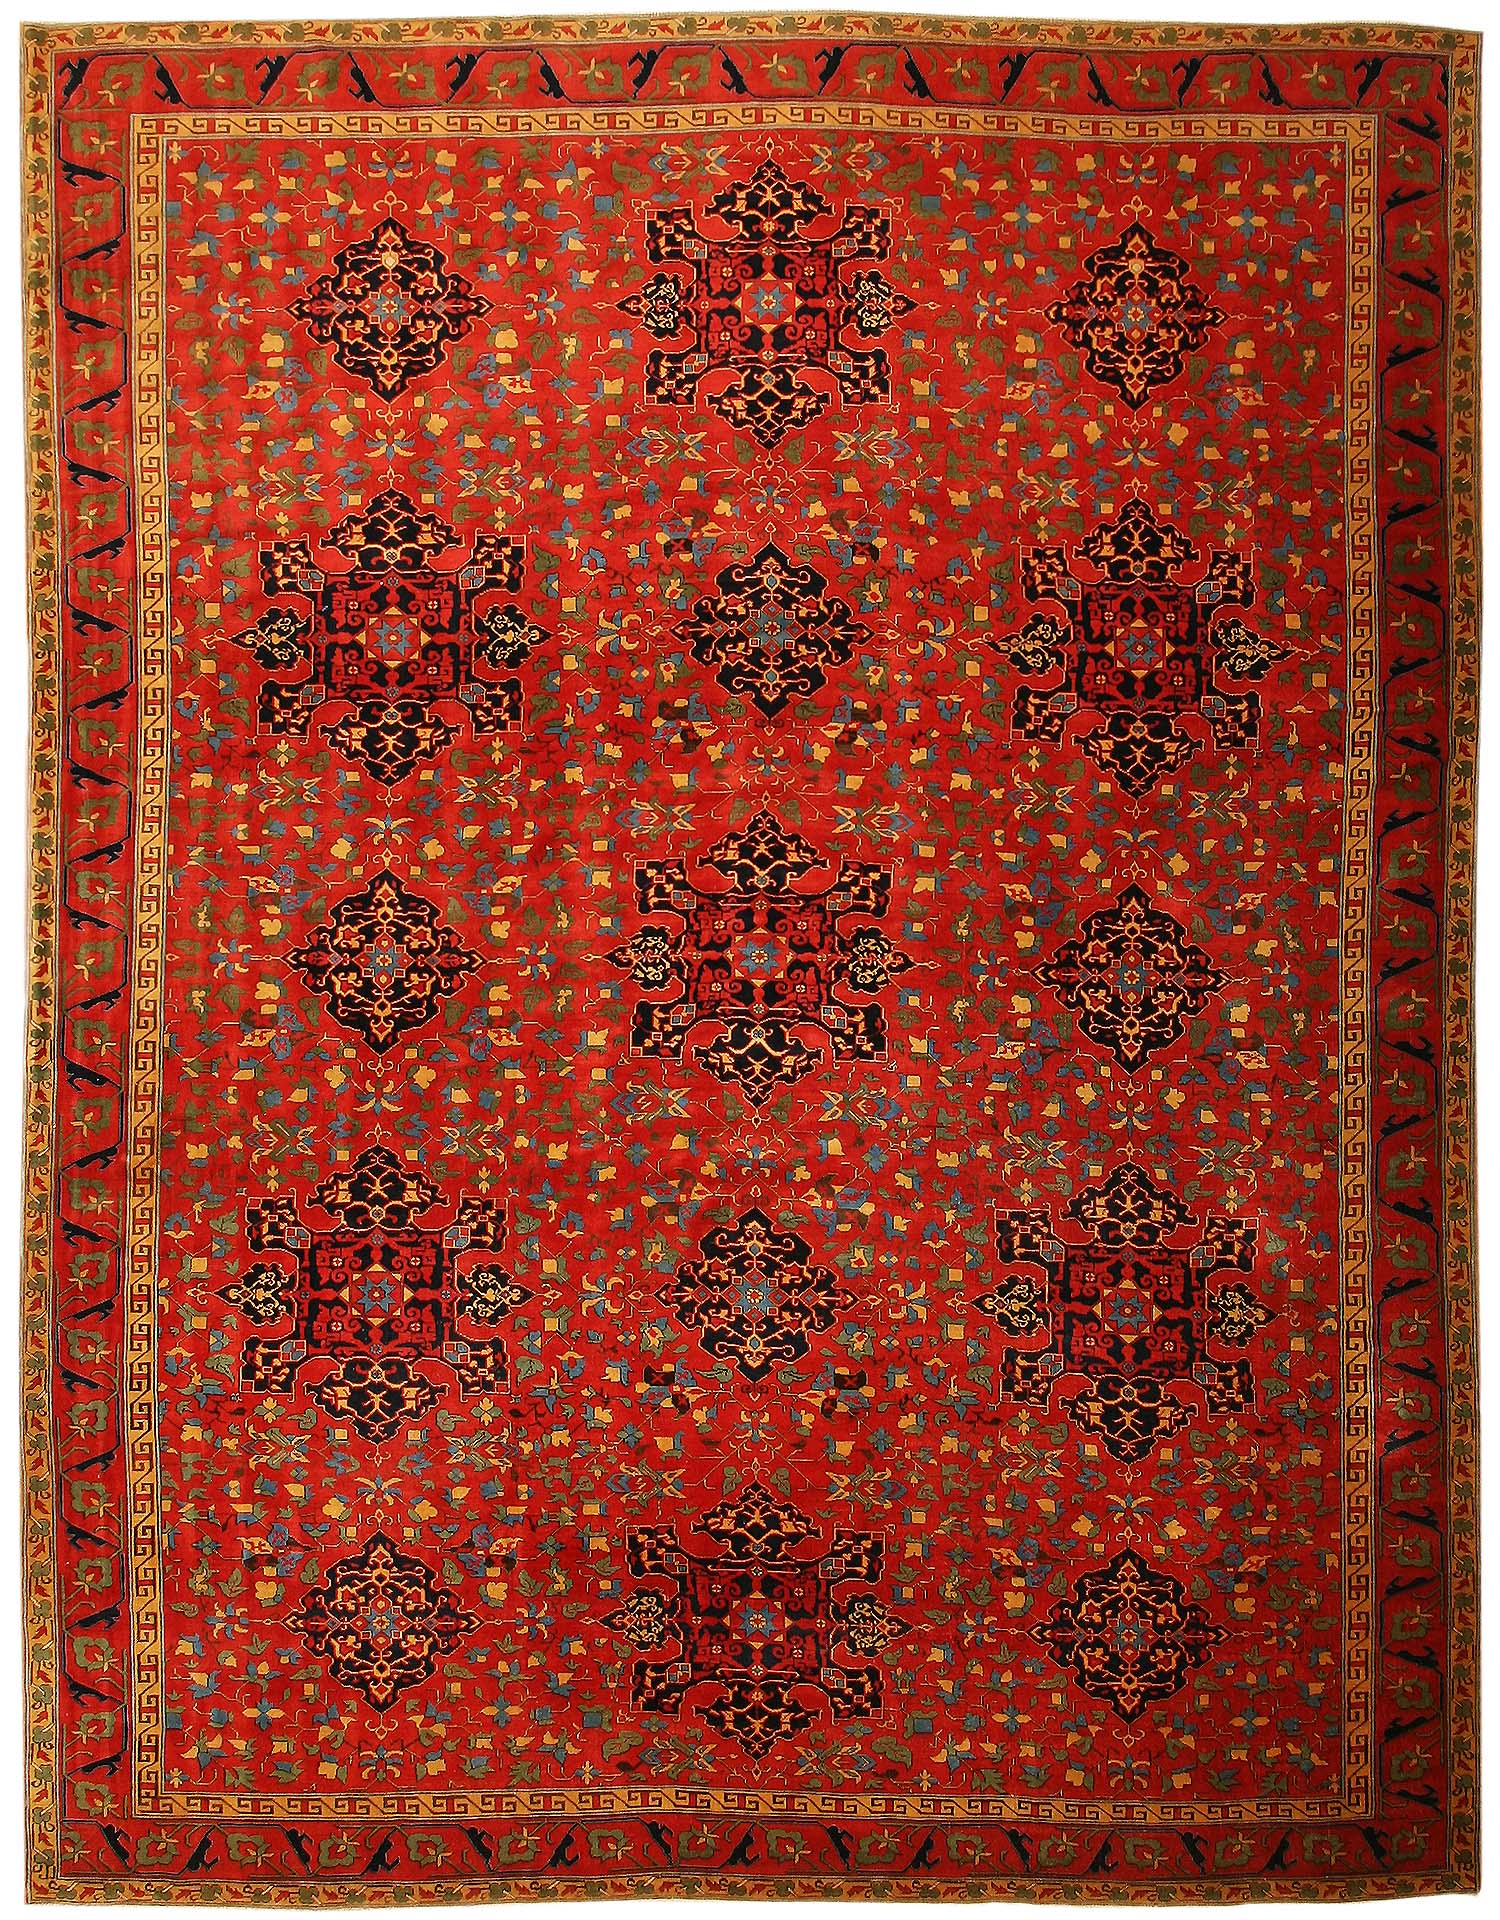 antique turkish rugs YNCEYVJ